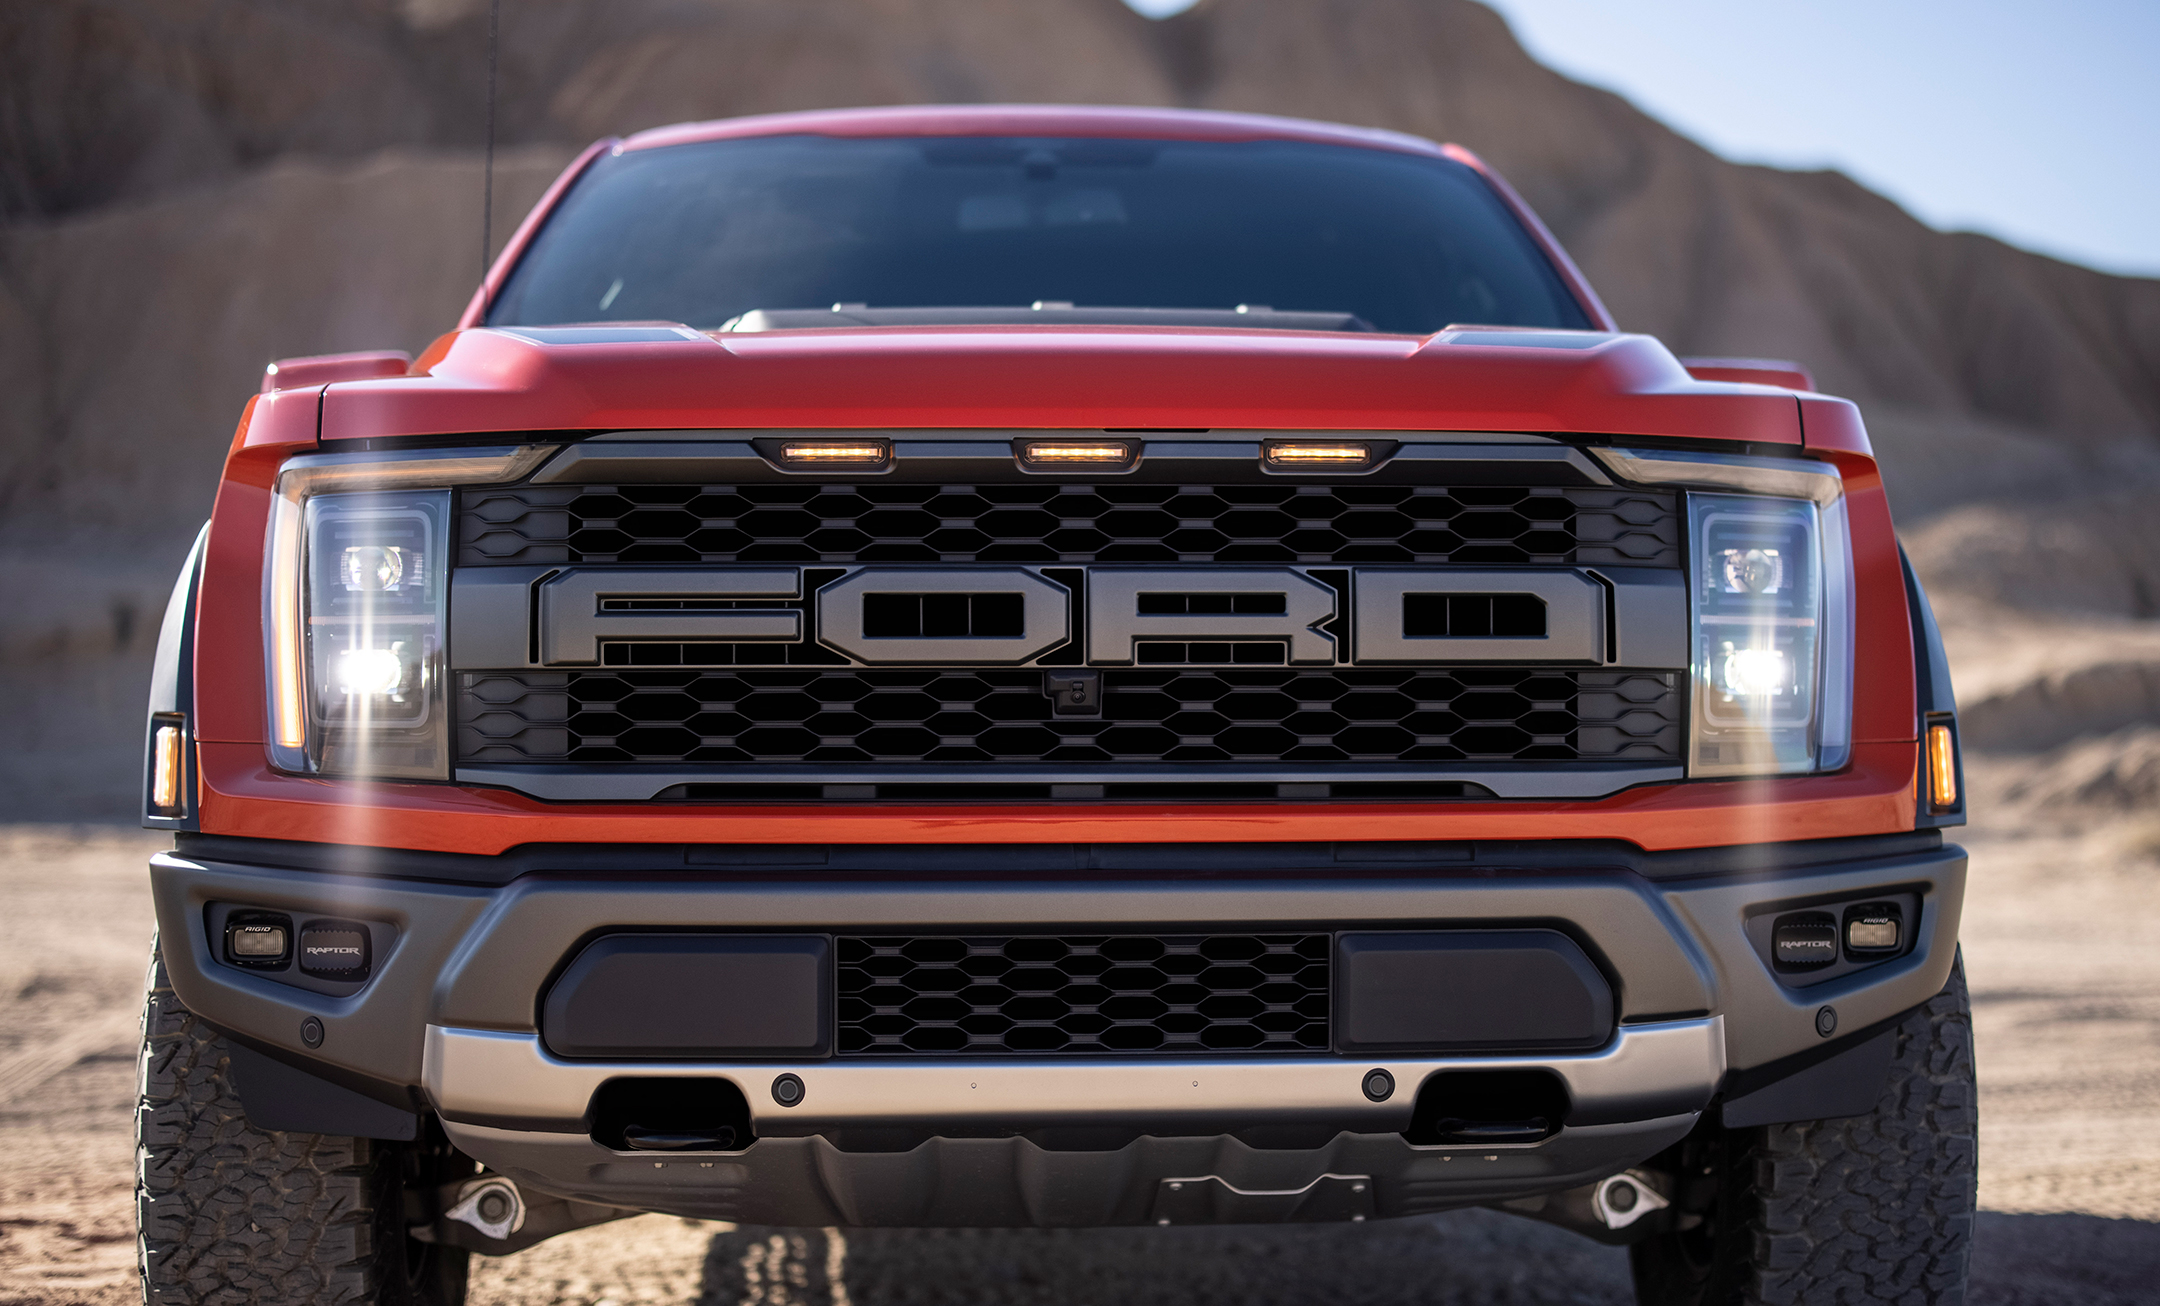 Ford F-150 Raptor - 2021 - front light / optique avant